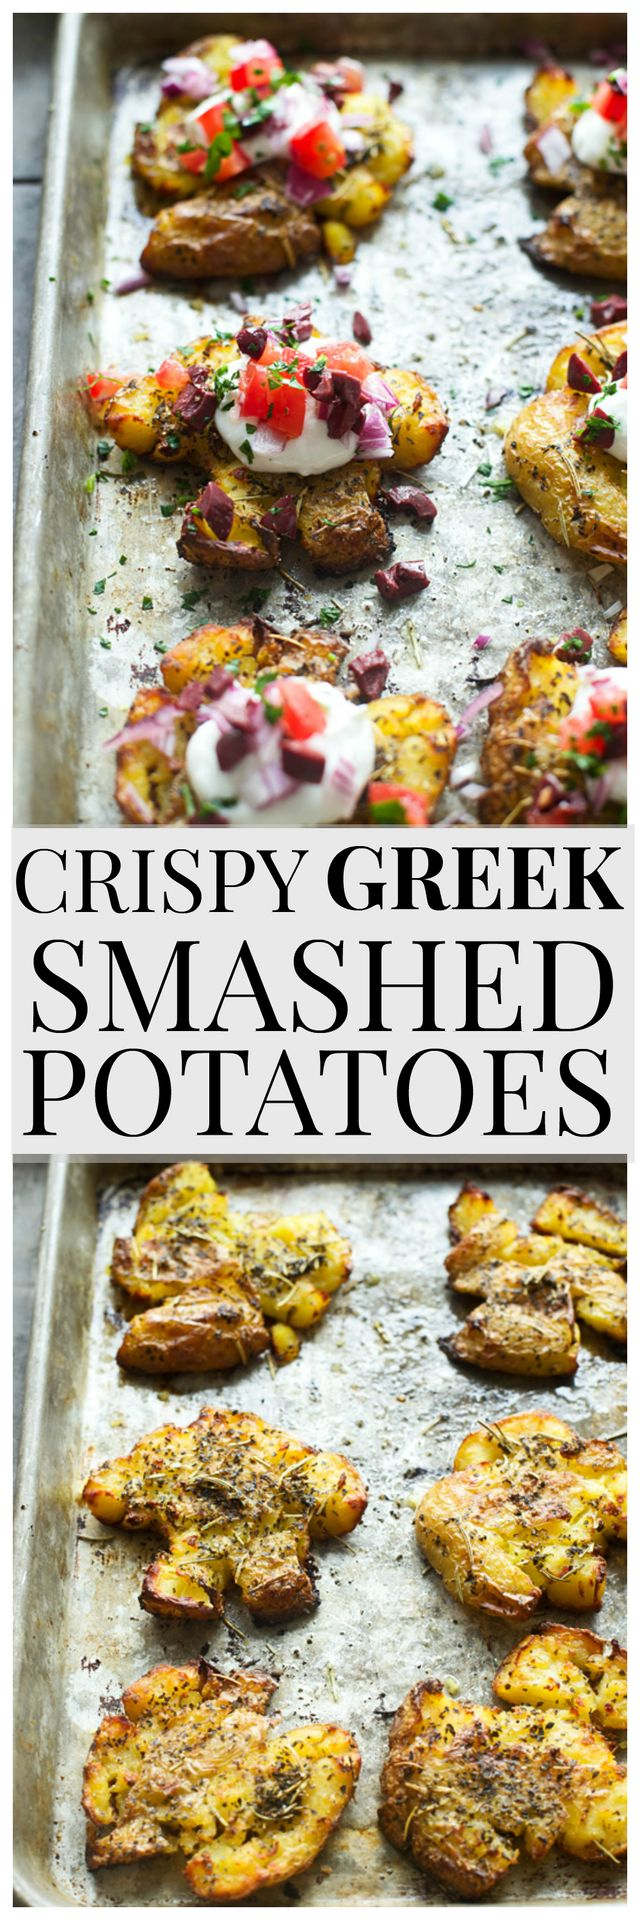 These Crispy Greek Smashed Potatoes are easy to make, so delicious and the perfect small bite to serve at a party. The crispy potatoes are topped with a lemon, garlic Greek yogurt, chopped kalamata ol